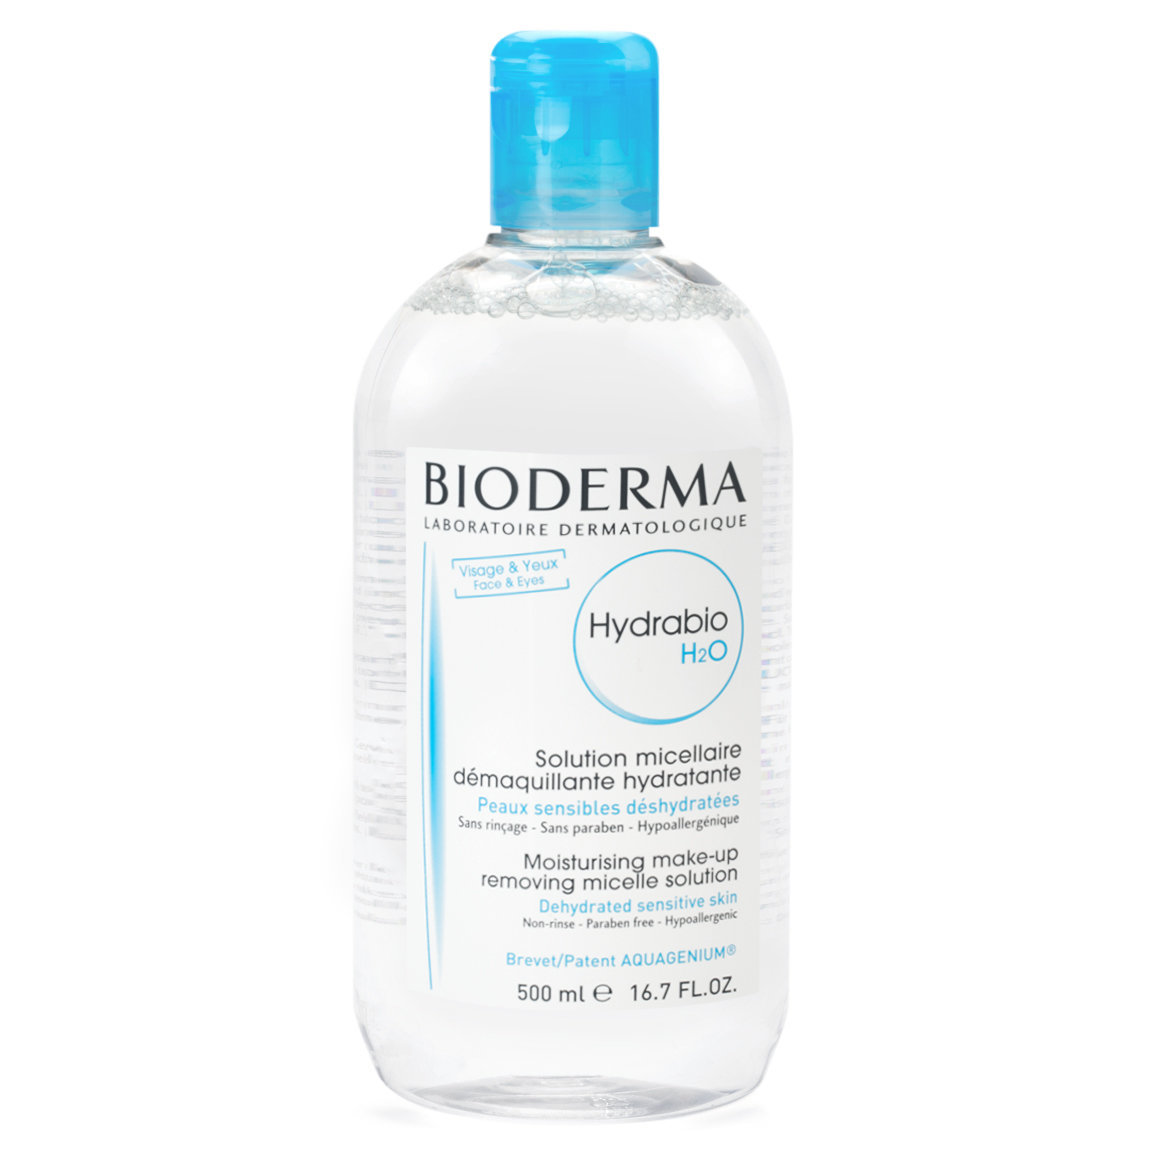 Bioderma Hydrabio H2O 500 ml product smear.